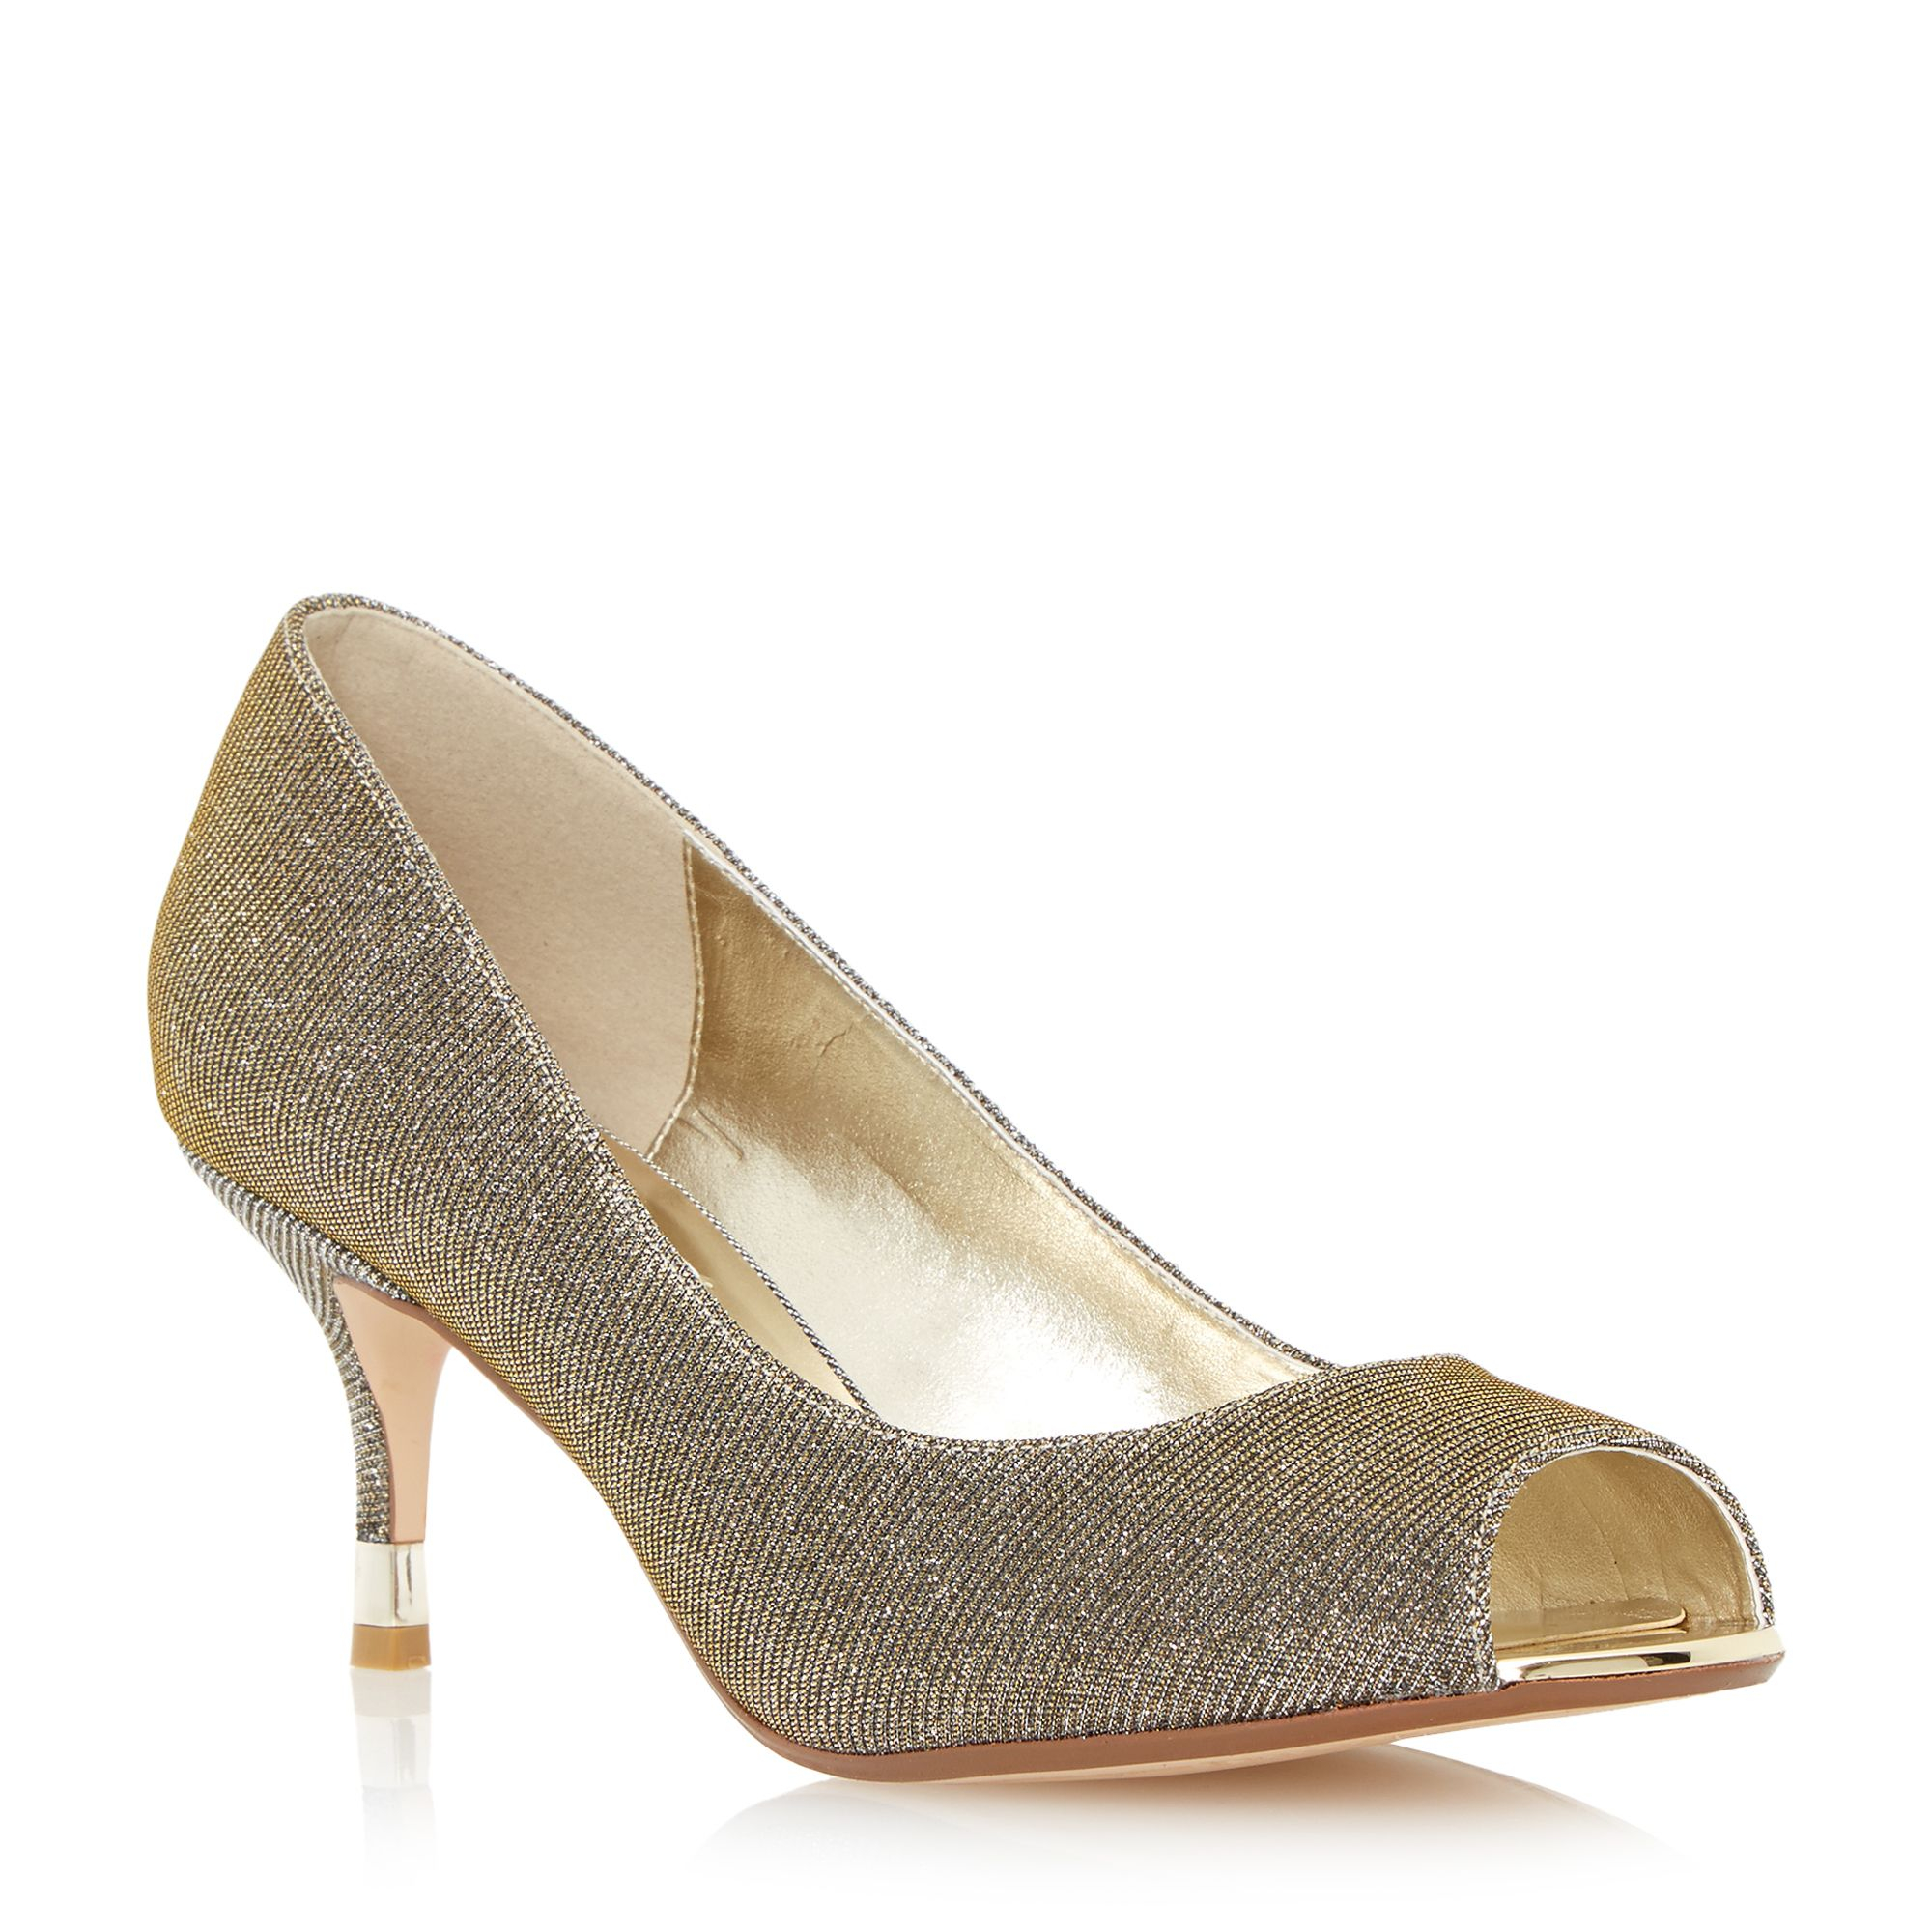 Dune Denise Peep Toe Kitten Heel Court Shoe in Metallic | Lyst